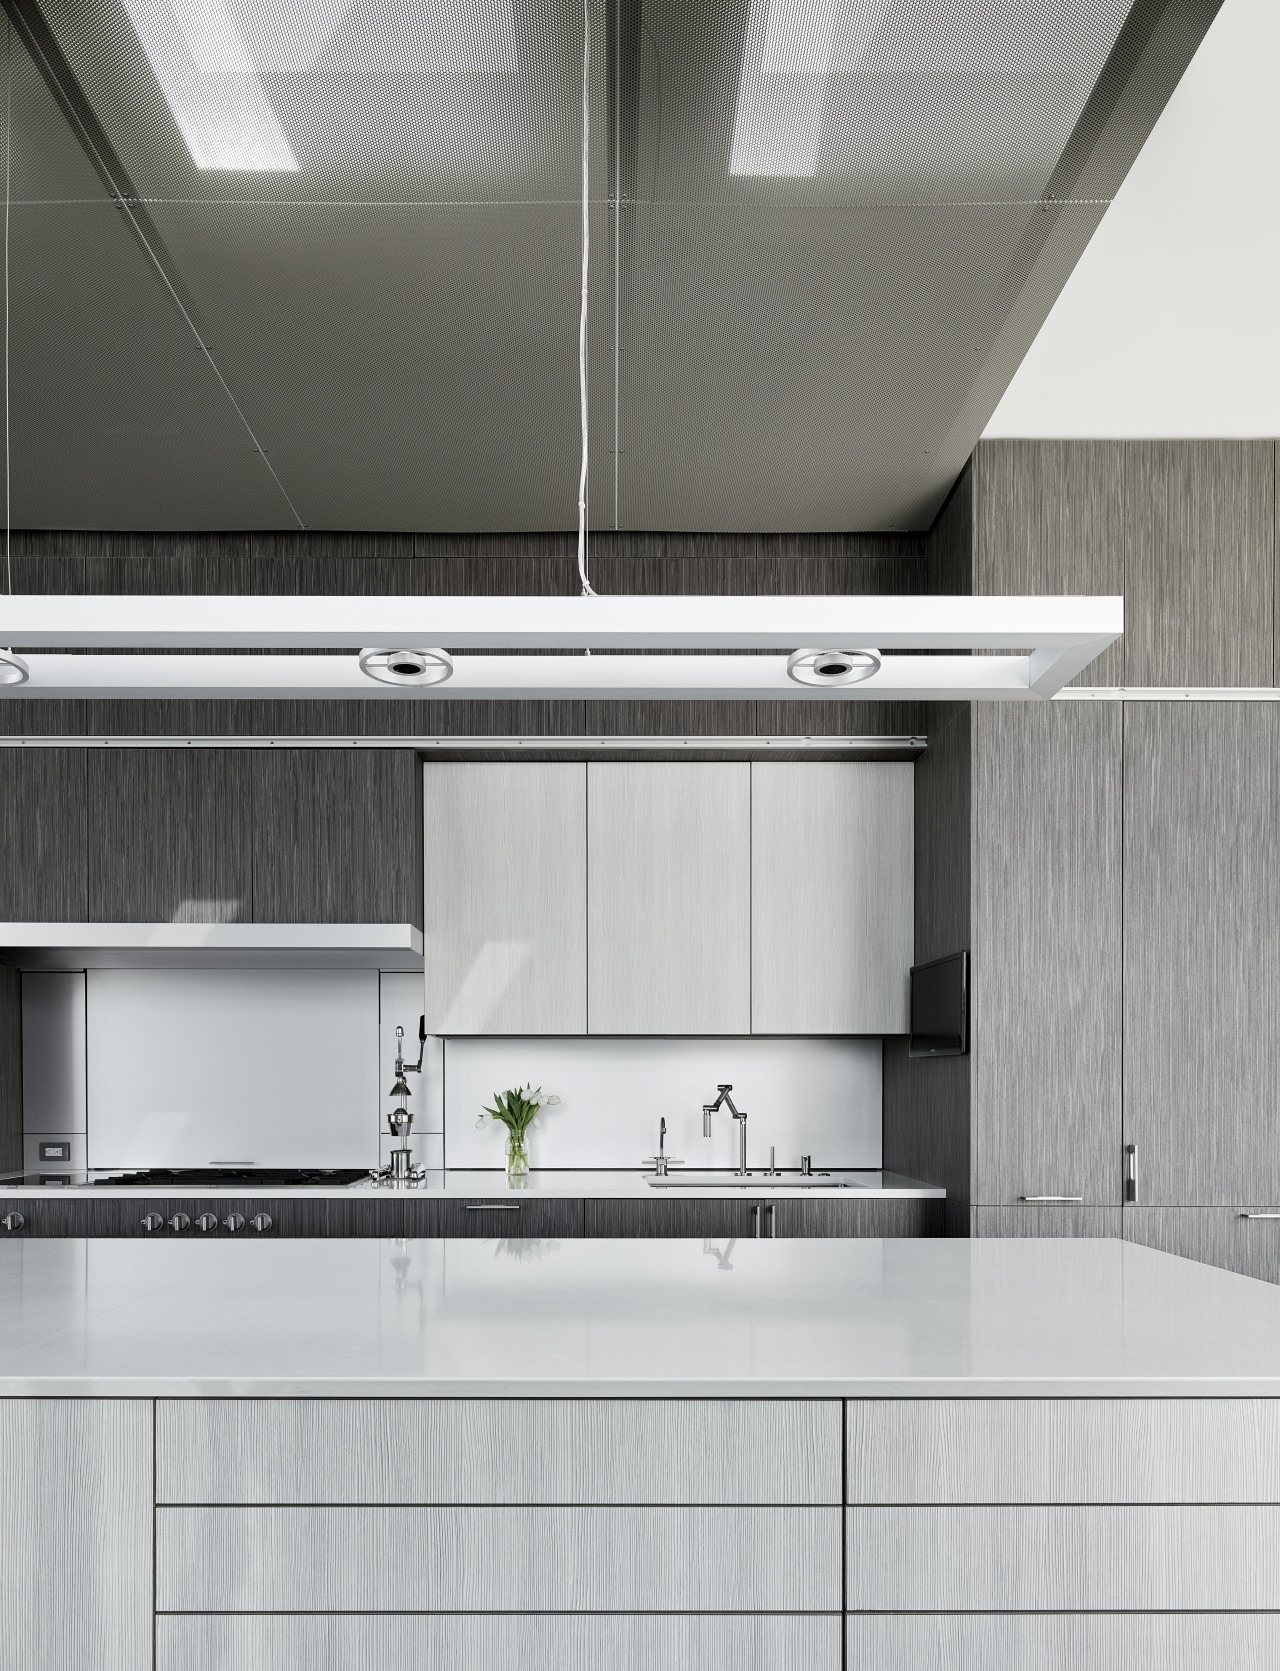 Cabinets in a mix of mid-gray veneer and architecture, countertop, interior design, kitchen, product, product design, gray, white